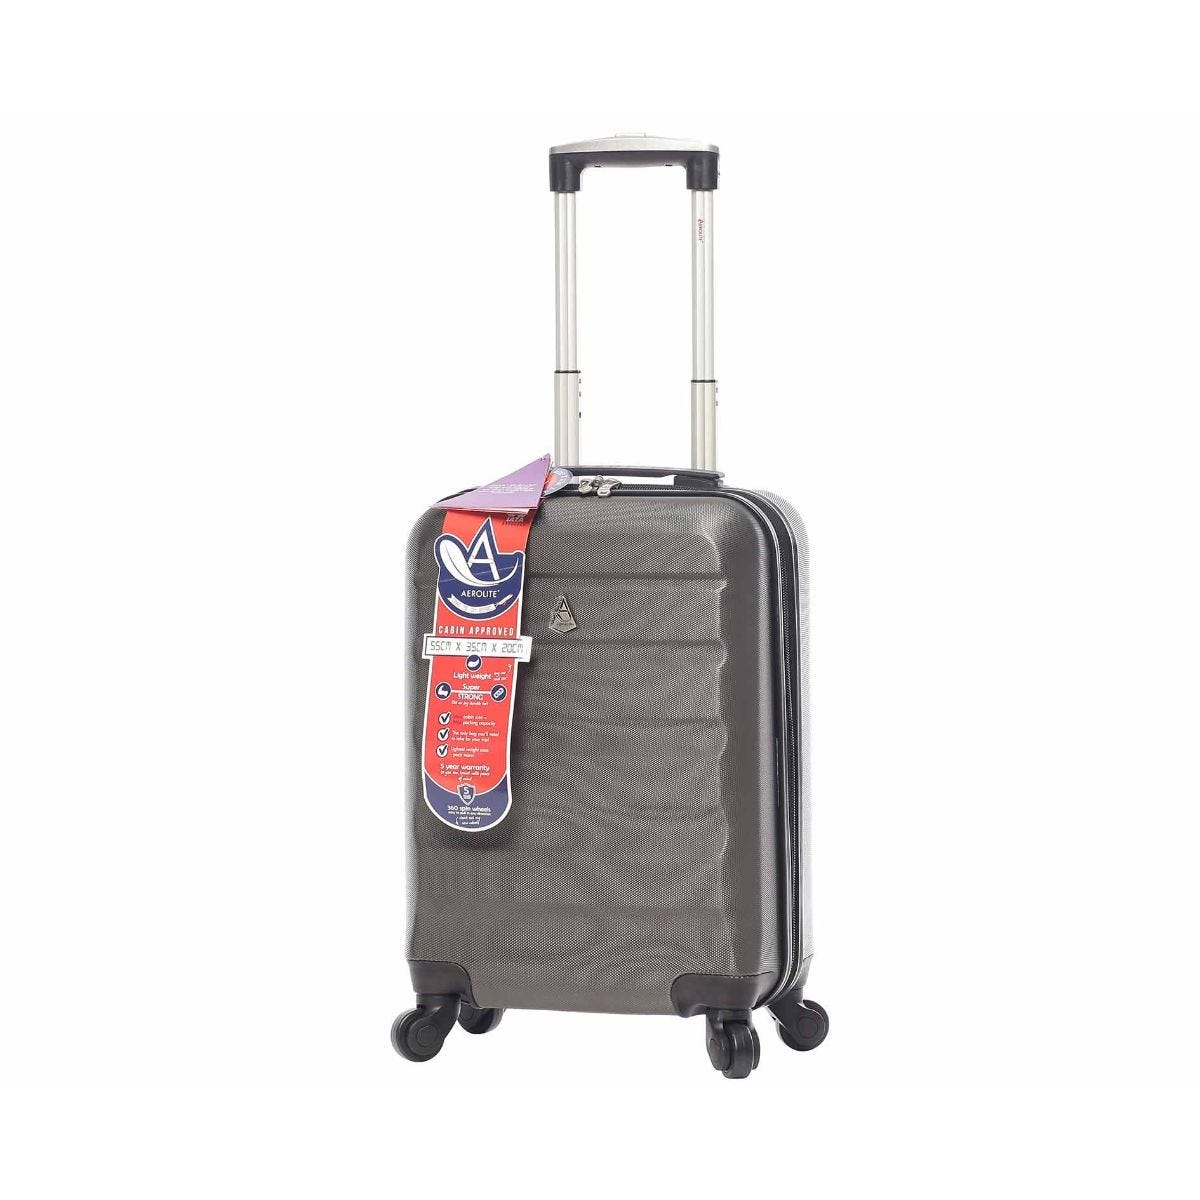 1c5db9869 Luggage & Travel Bags | Ryman® UK